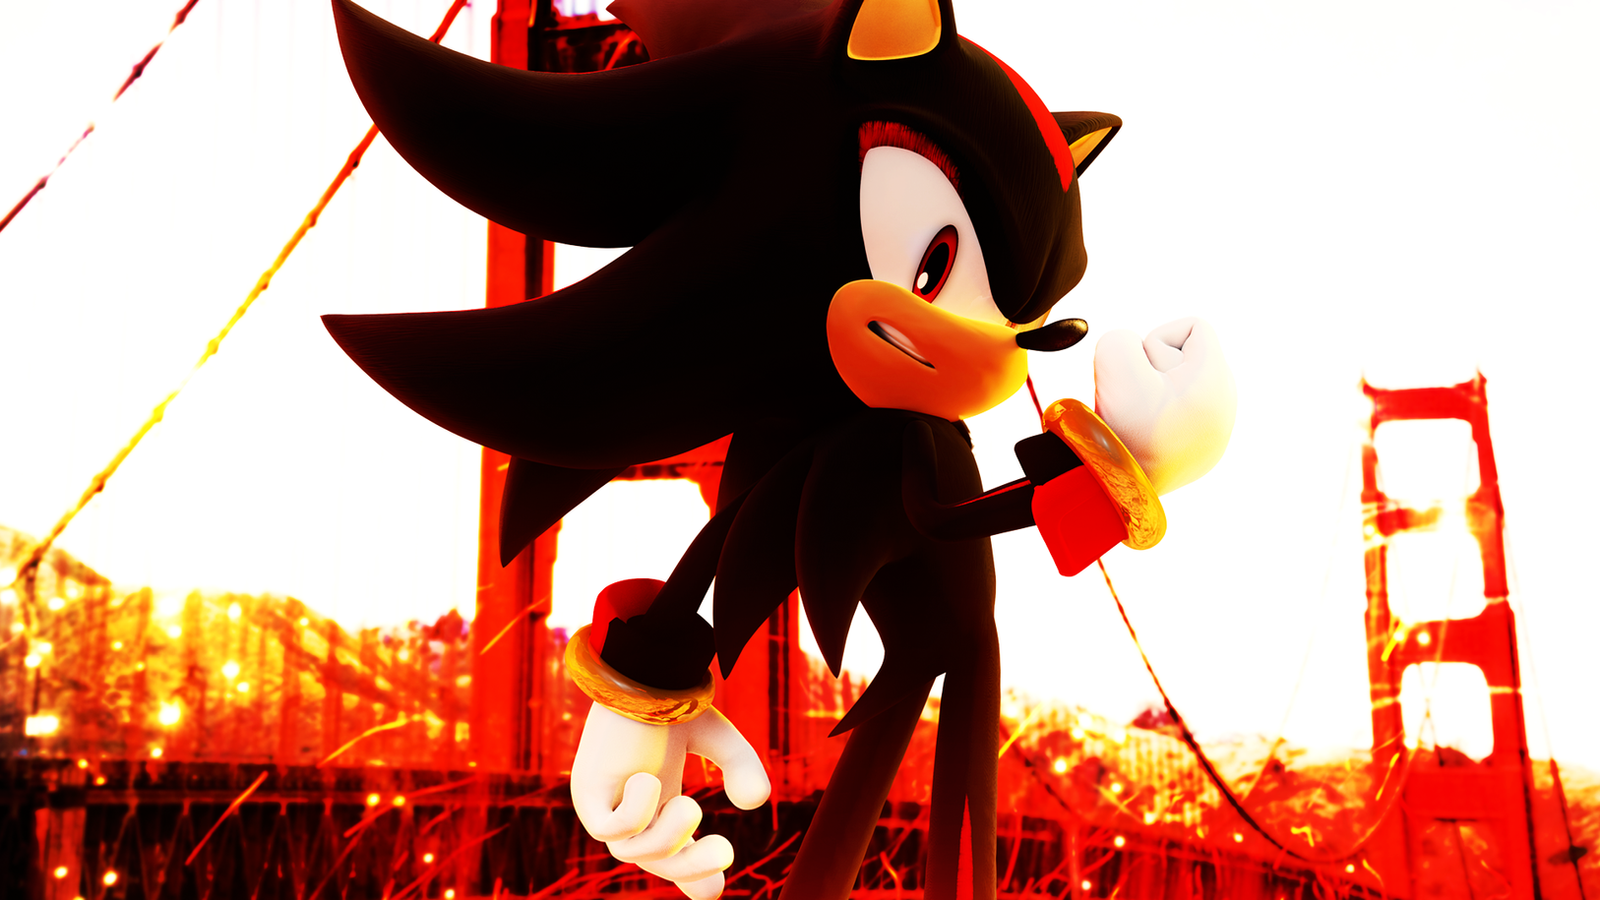 Shadow the hedgehog 2017 by light rock on deviantart for Craft fairs near me november 2017